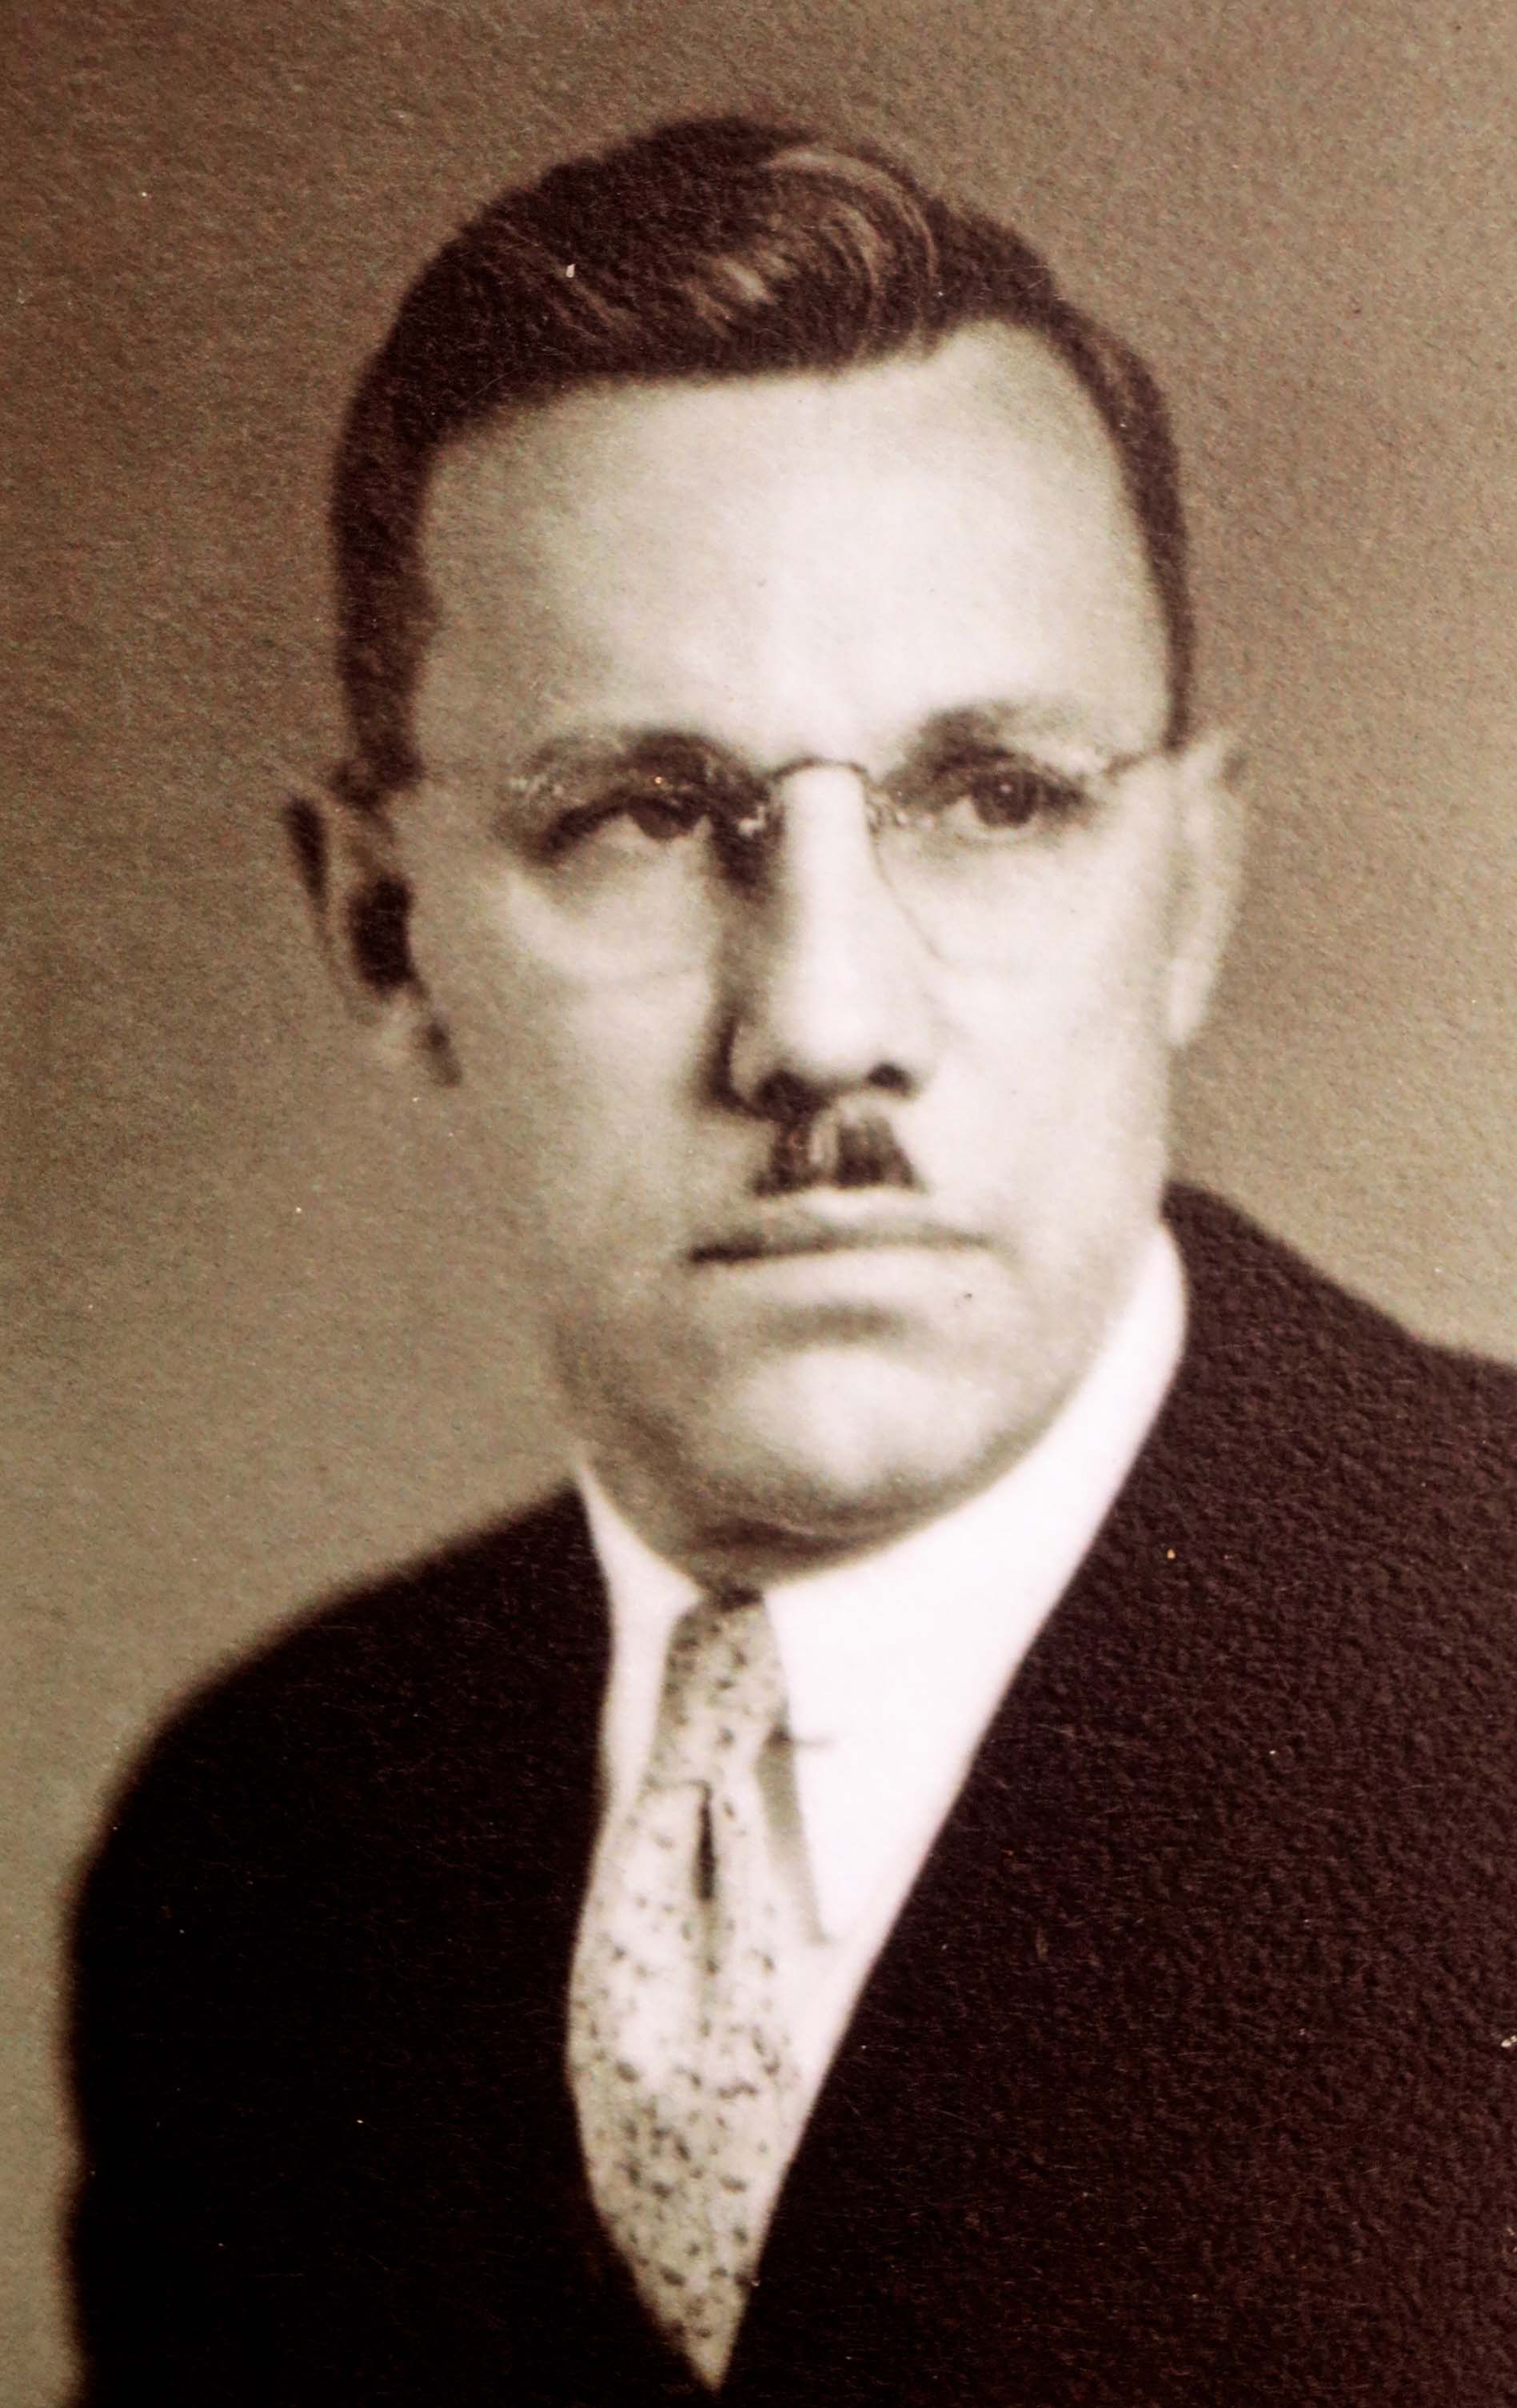 Conde McCollough served as Oregon's state bridge engineer from 1919 to 1935, following which he spent a couple of years designing bridges along the Pan American Highway in Central America.